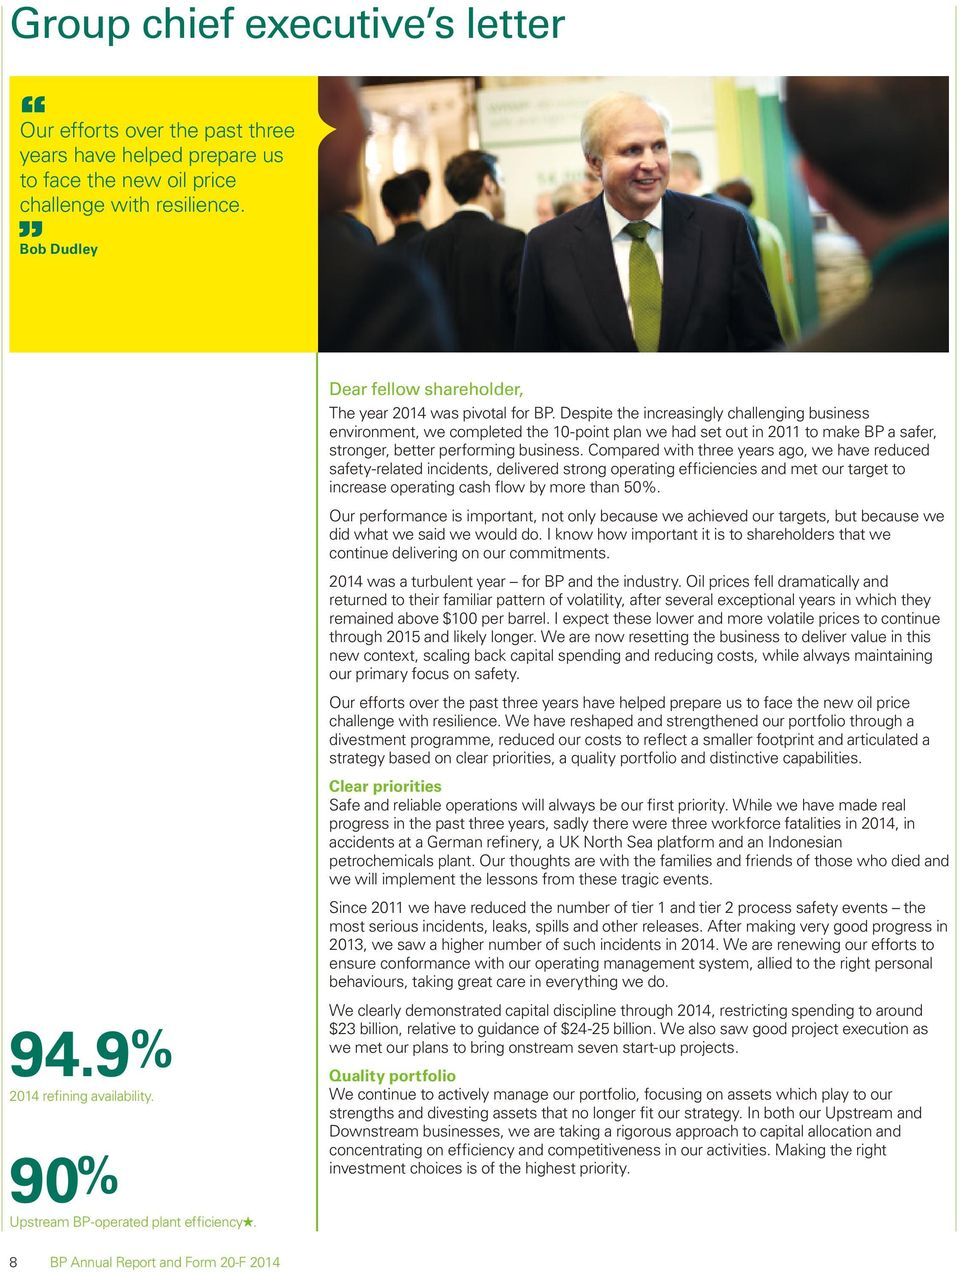 Despite the increasingly challenging business environment, we completed the 10-point plan we had set out in 2011 to make BP a safer, stronger, better performing business.